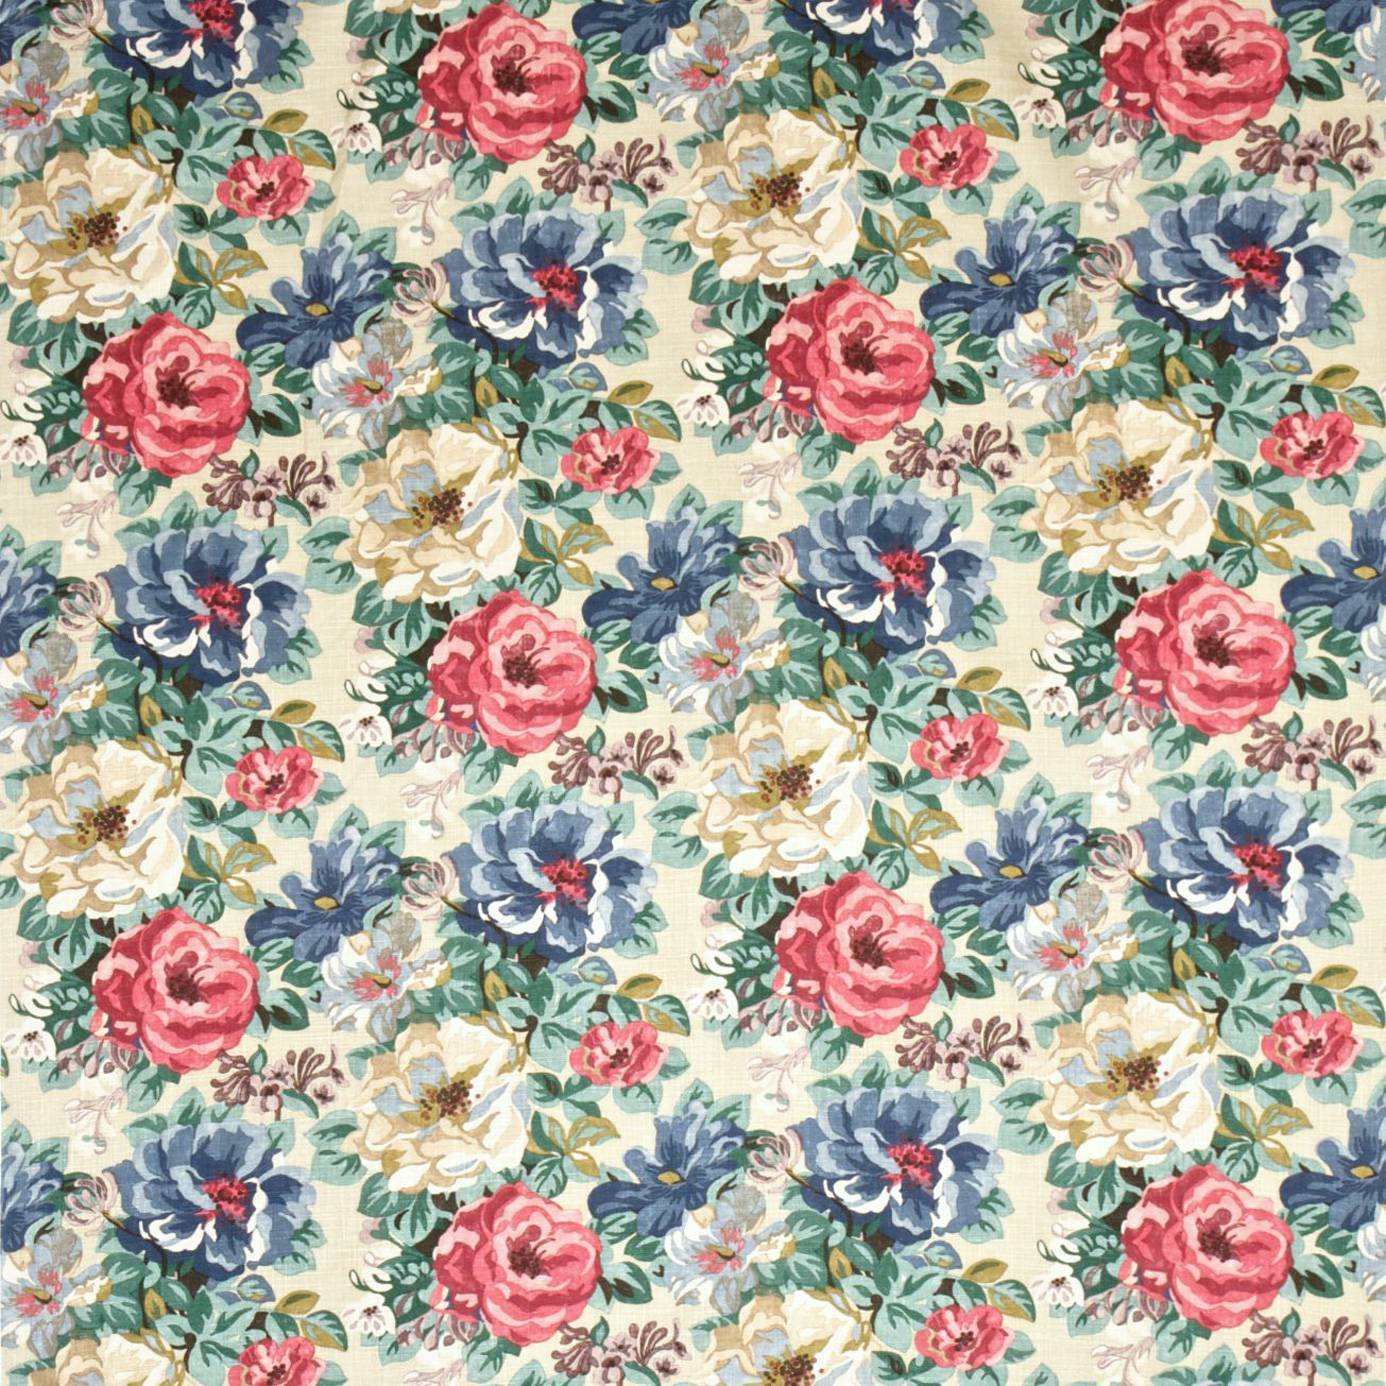 Midsummer Rose Fabric Antique Rose Dcavmi202